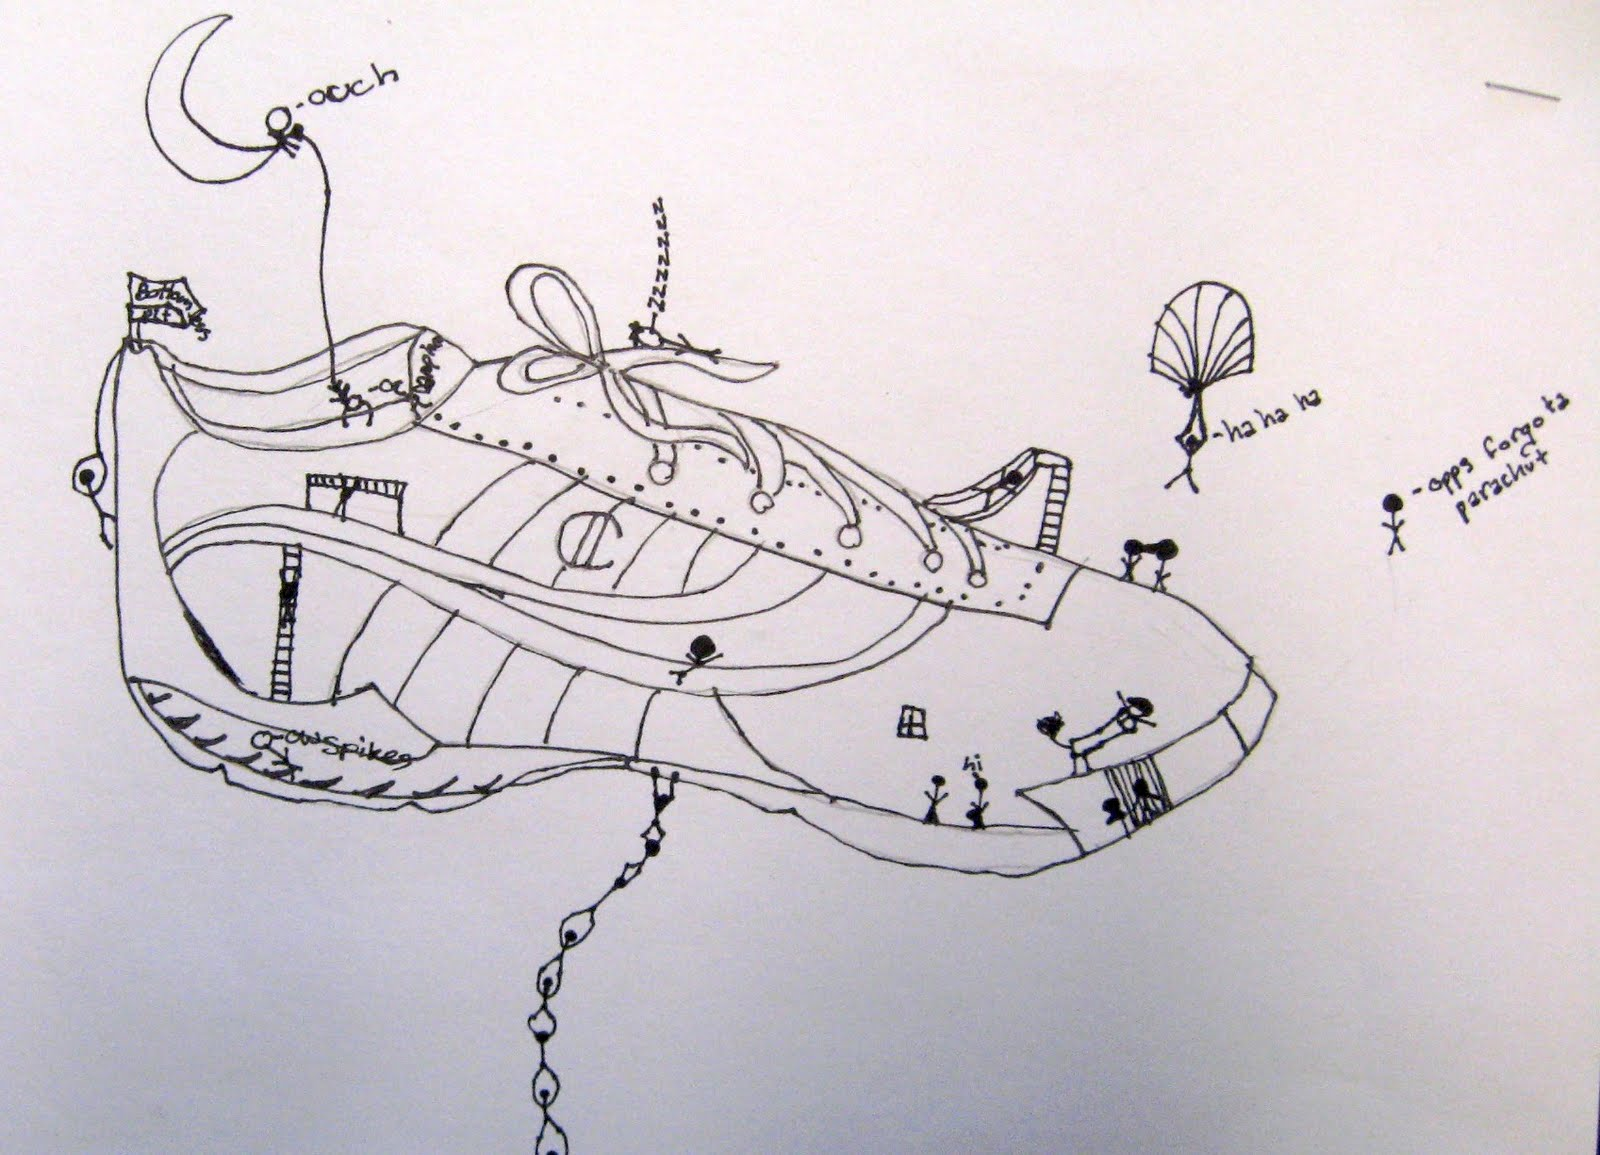 Drawn shoe contour drawing The they through volume space